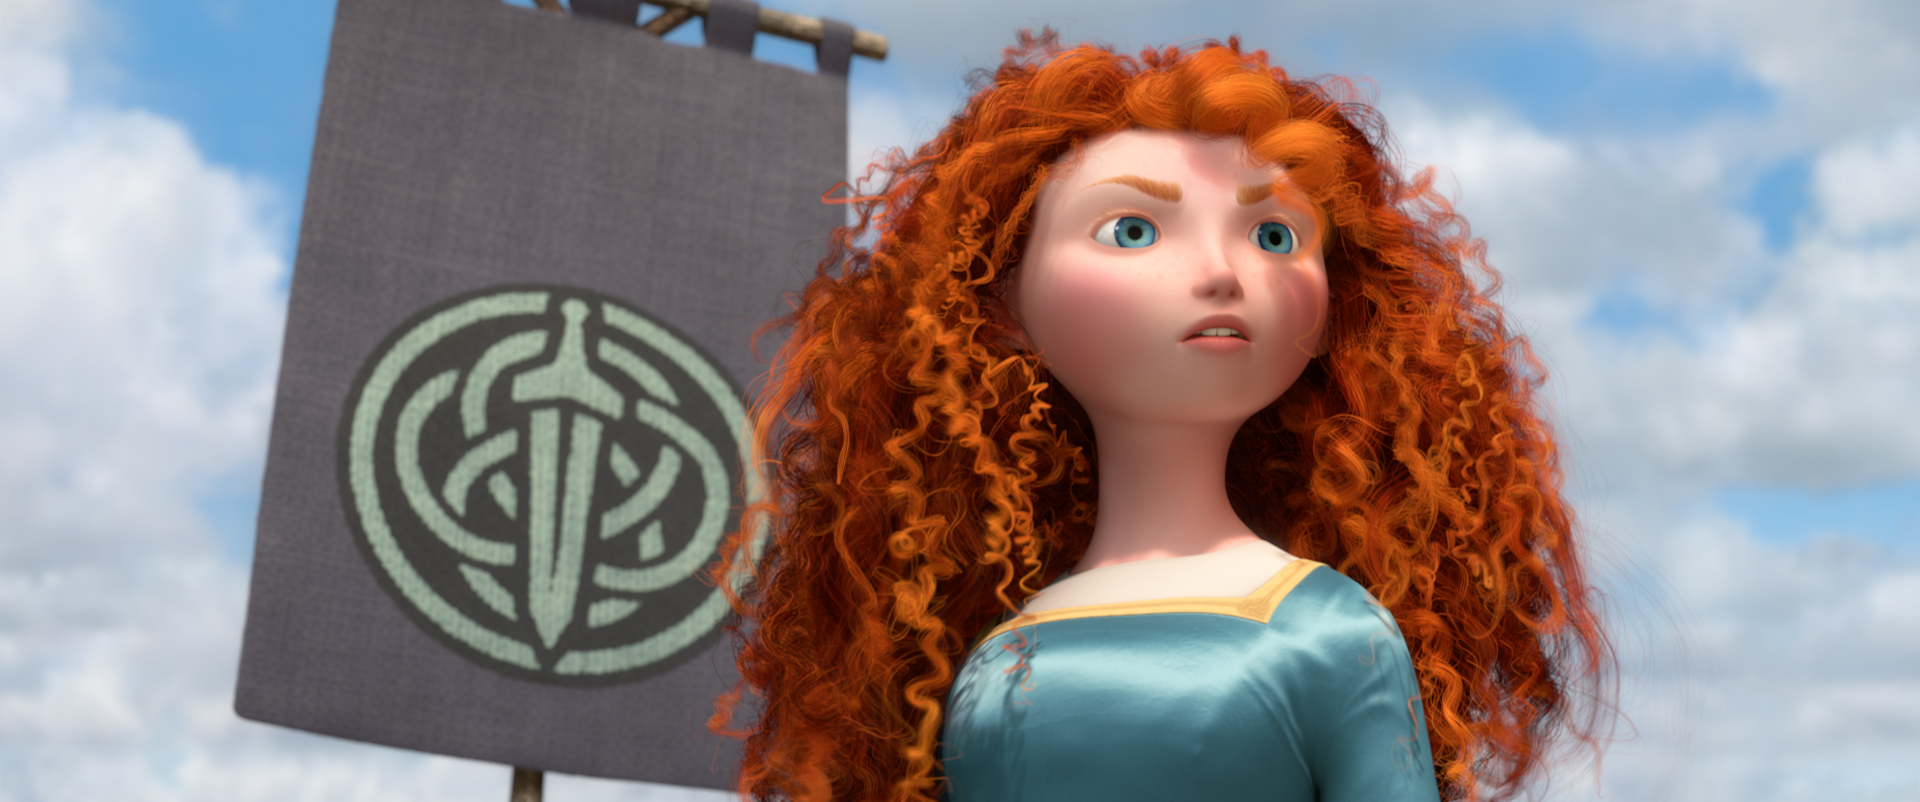 'Brave' Crosses $200 Million Mark At The Box Office